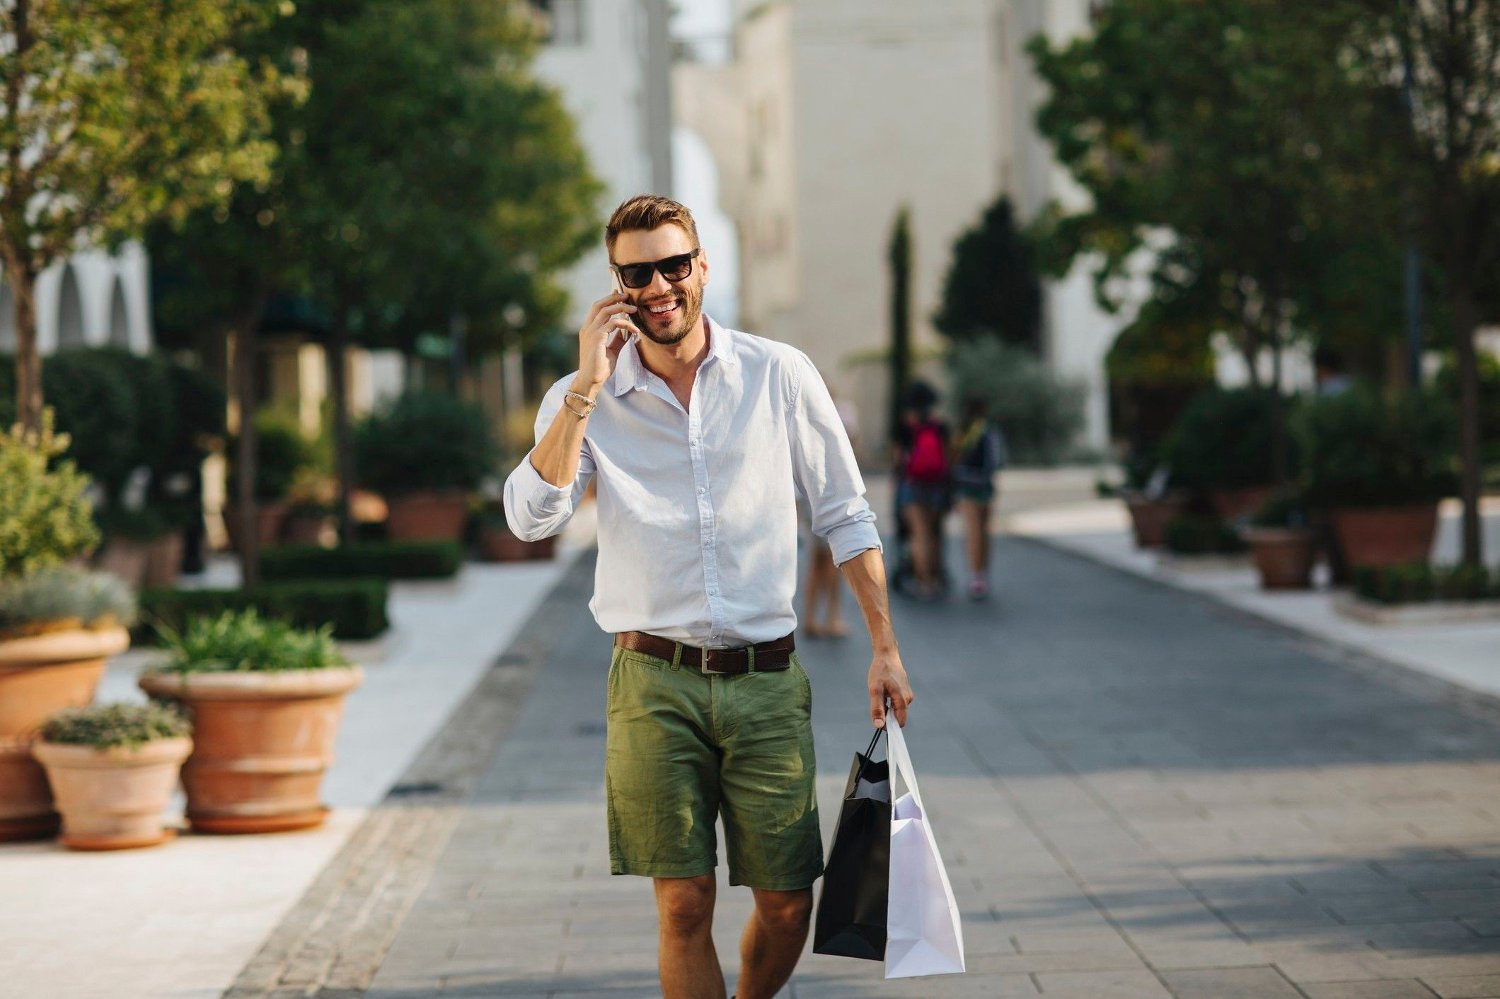 Young elegant man in the city Smiling elegant man walking on a city promenade at summer carrying shopping bags